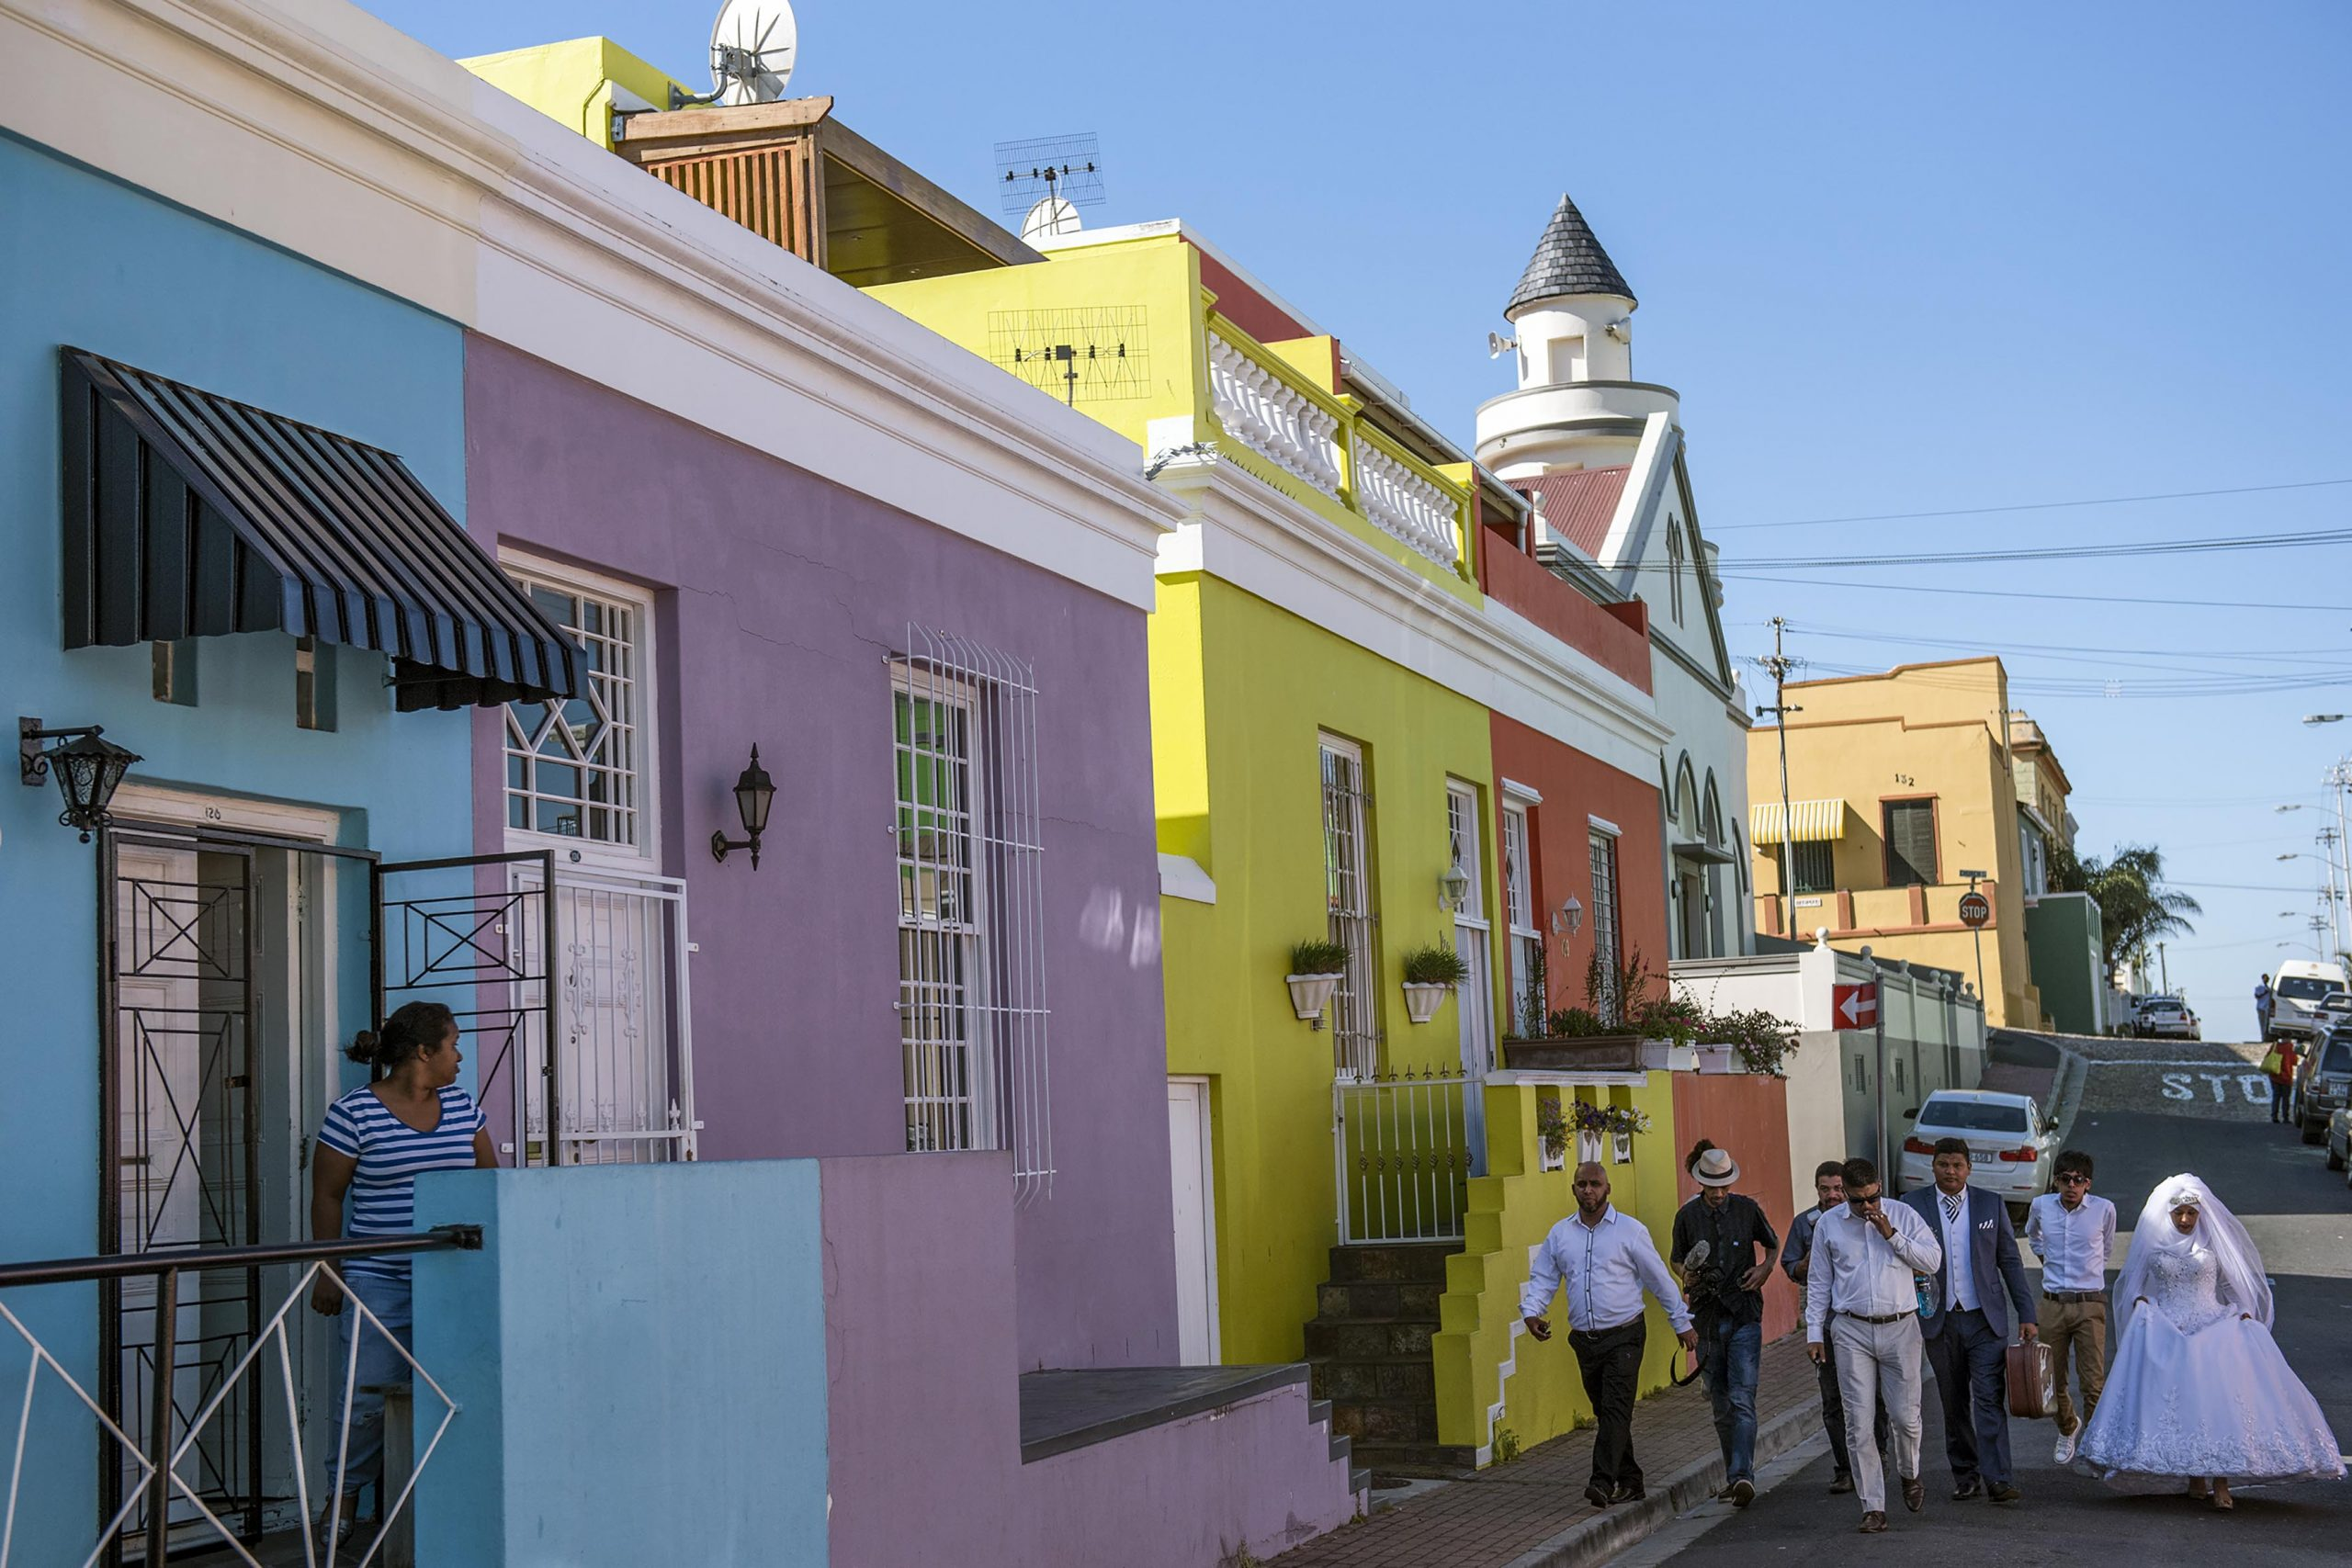 Undated: A Cape Muslim bridal party walks along the streets of the Bo-Kaap. (Photograph by Ishay Govender)